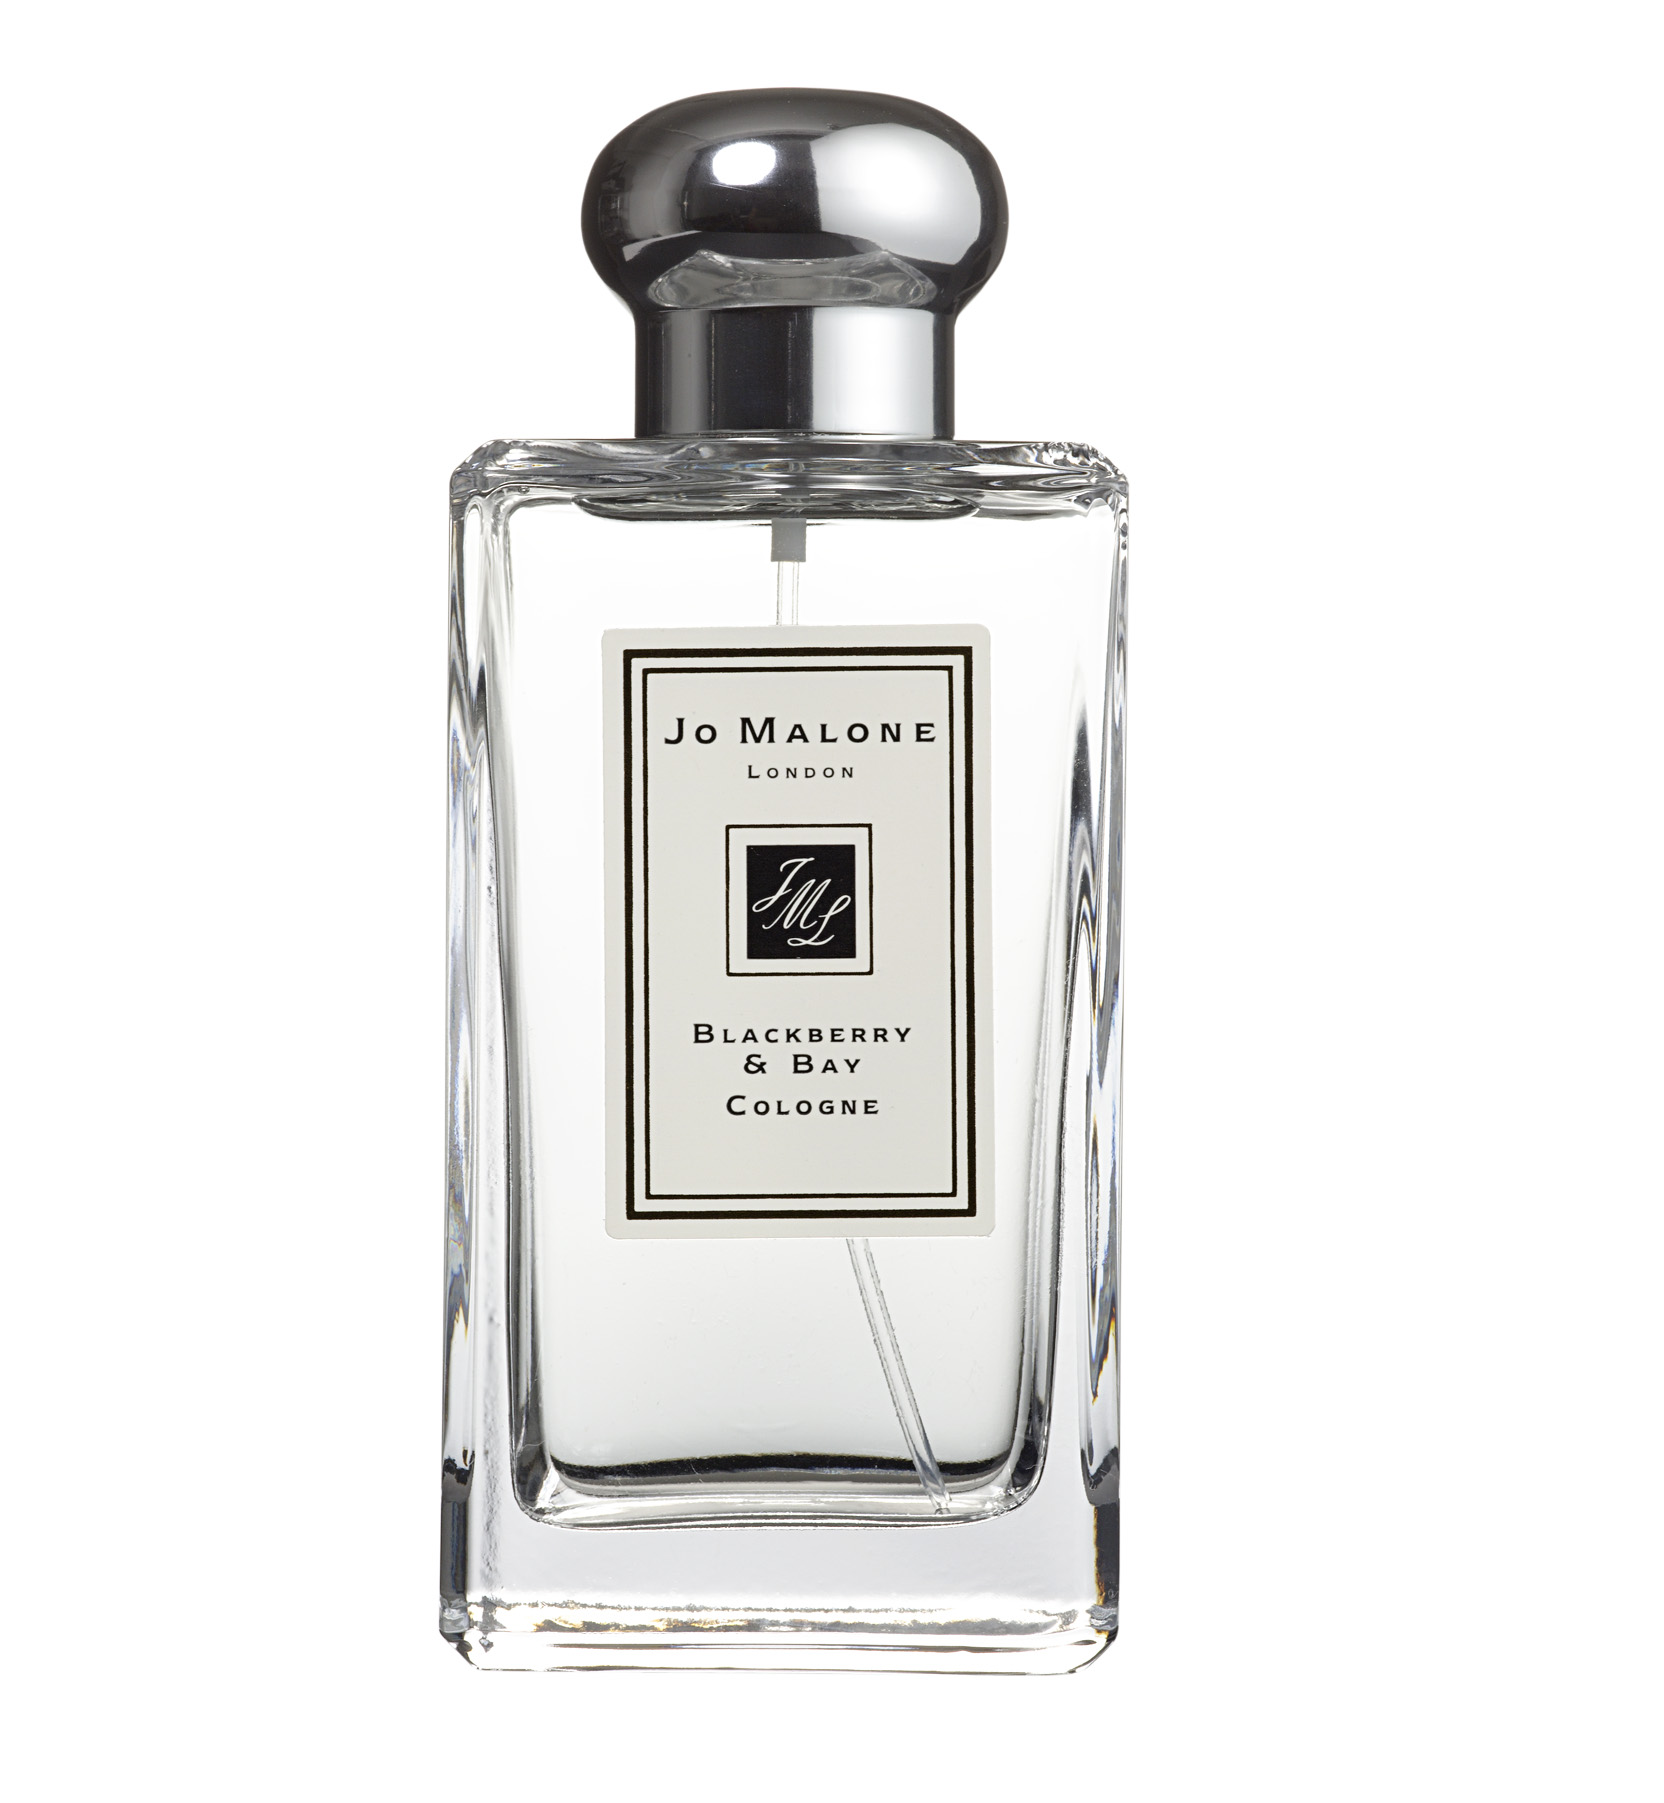 Купить Одеколон Jo Malone, Jo Malone Blackberry & Bay 100ml, Великобритания